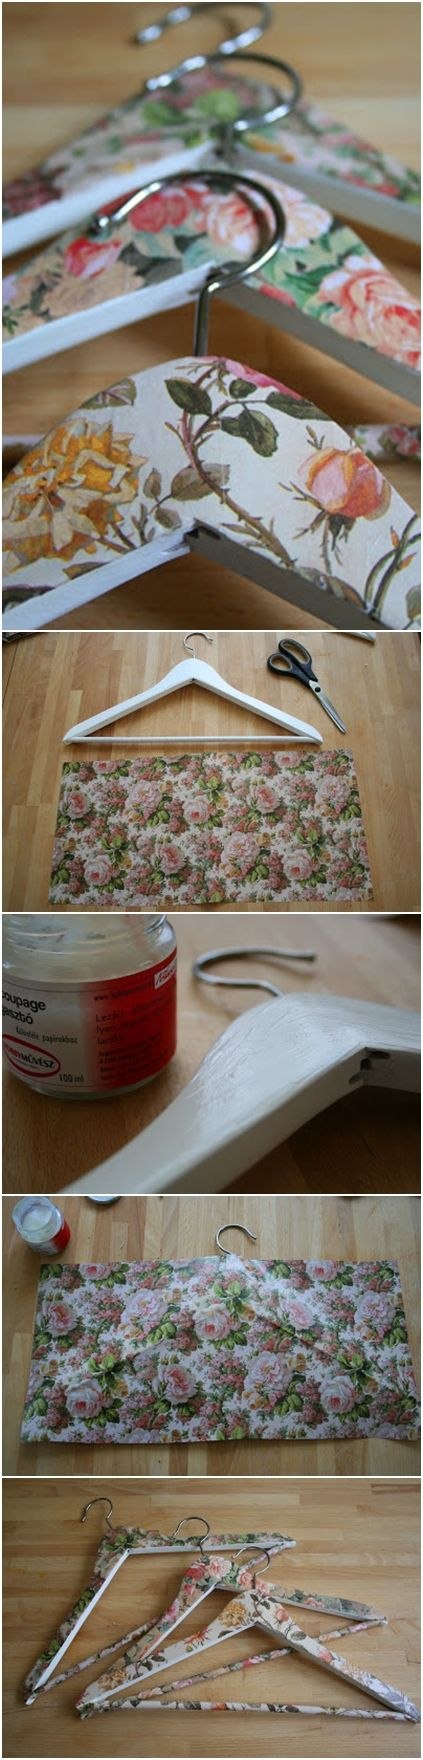 Rosy hanger what a easy arts & crafts for resident to do. Plus they would have nice personalized hangers